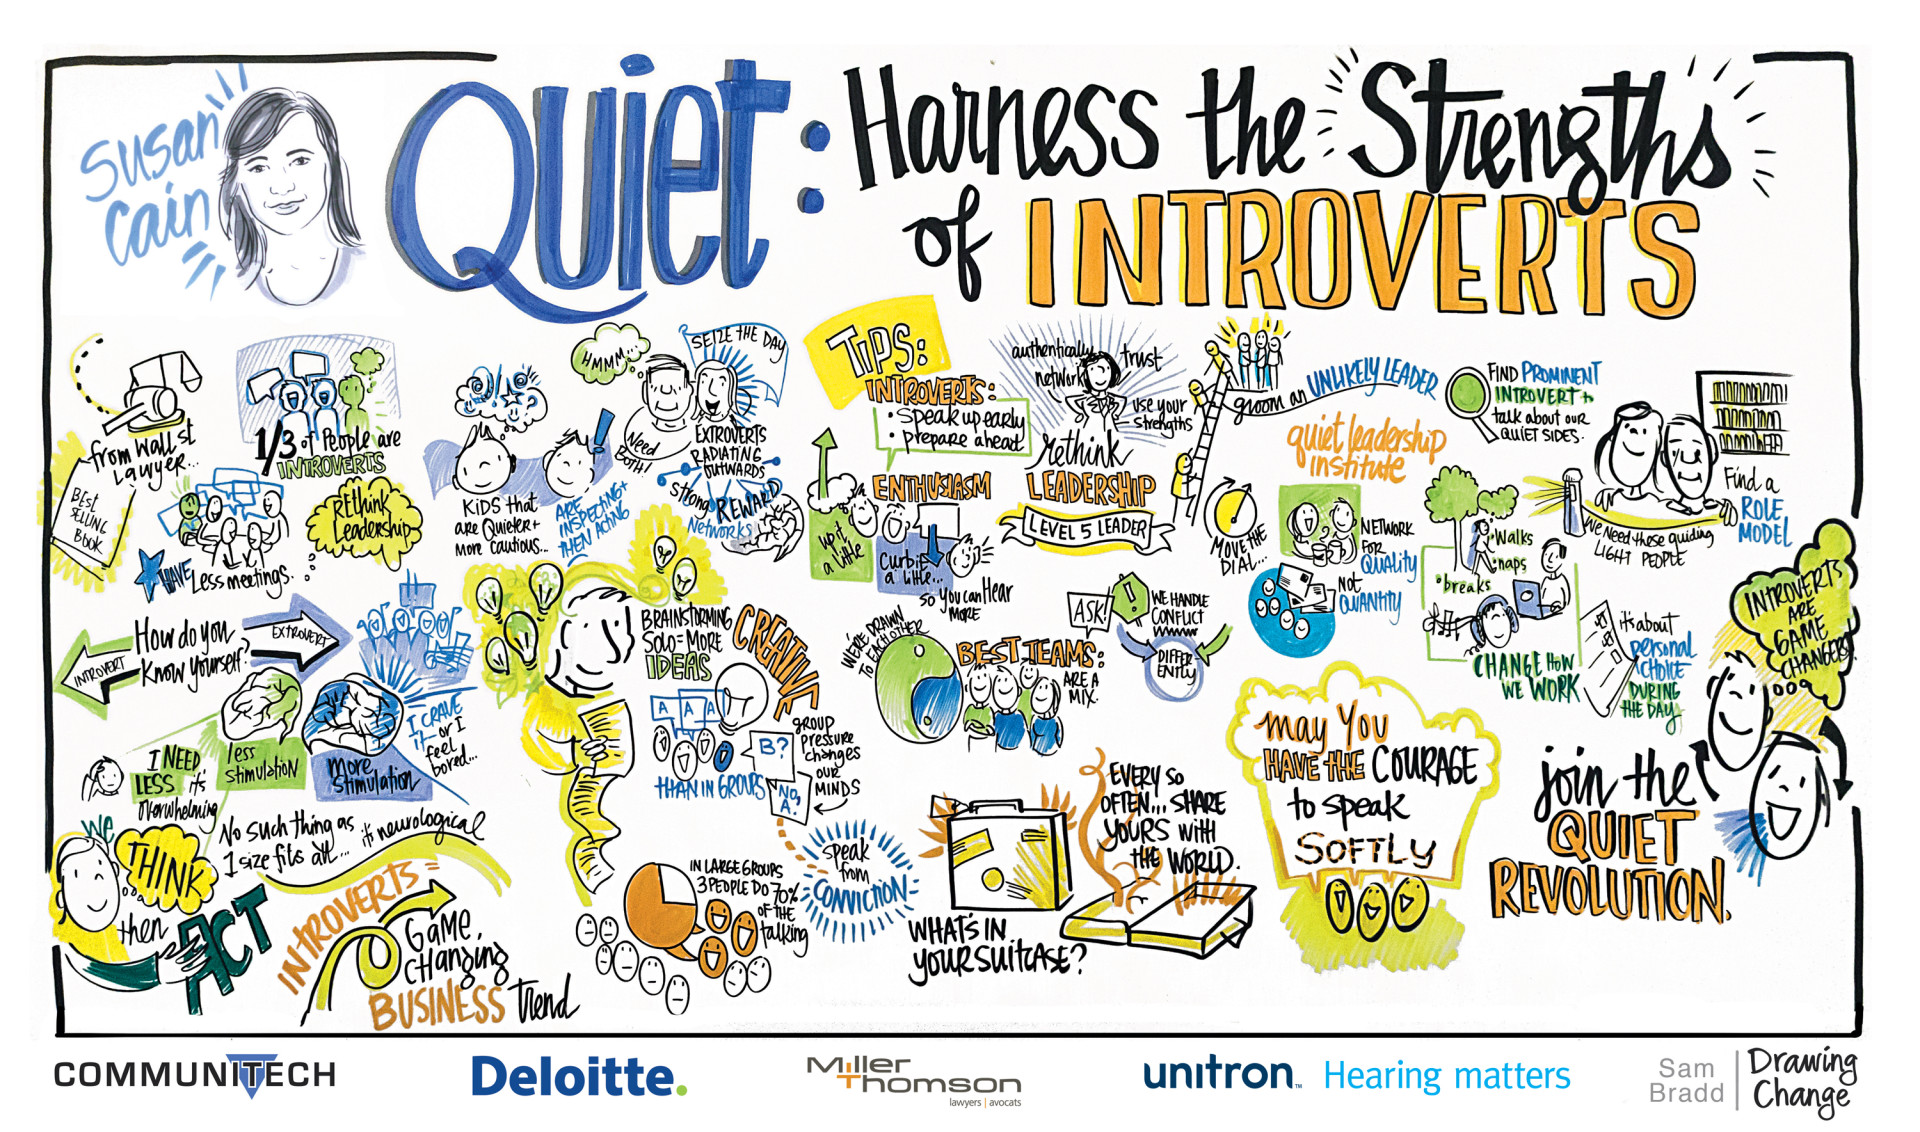 Graphic recording of Susan Cain's keynote on leadership and introverts at Communitech's TLCWR conference 2015